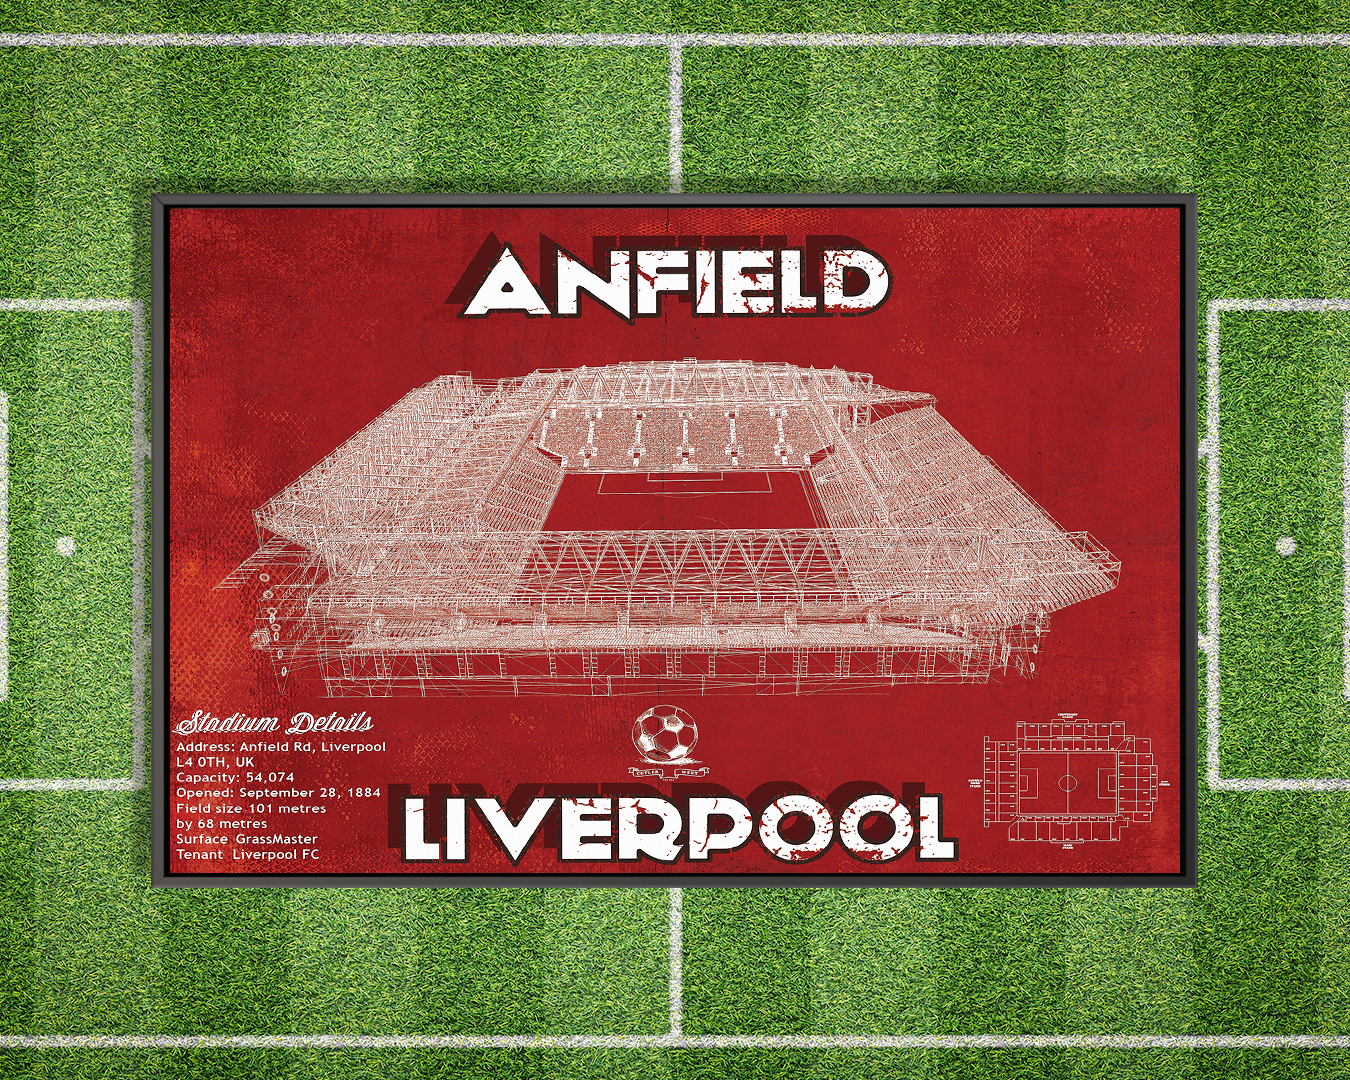 Red blueprint of Anfield stadium in Liverpool with stadium details on the bottom